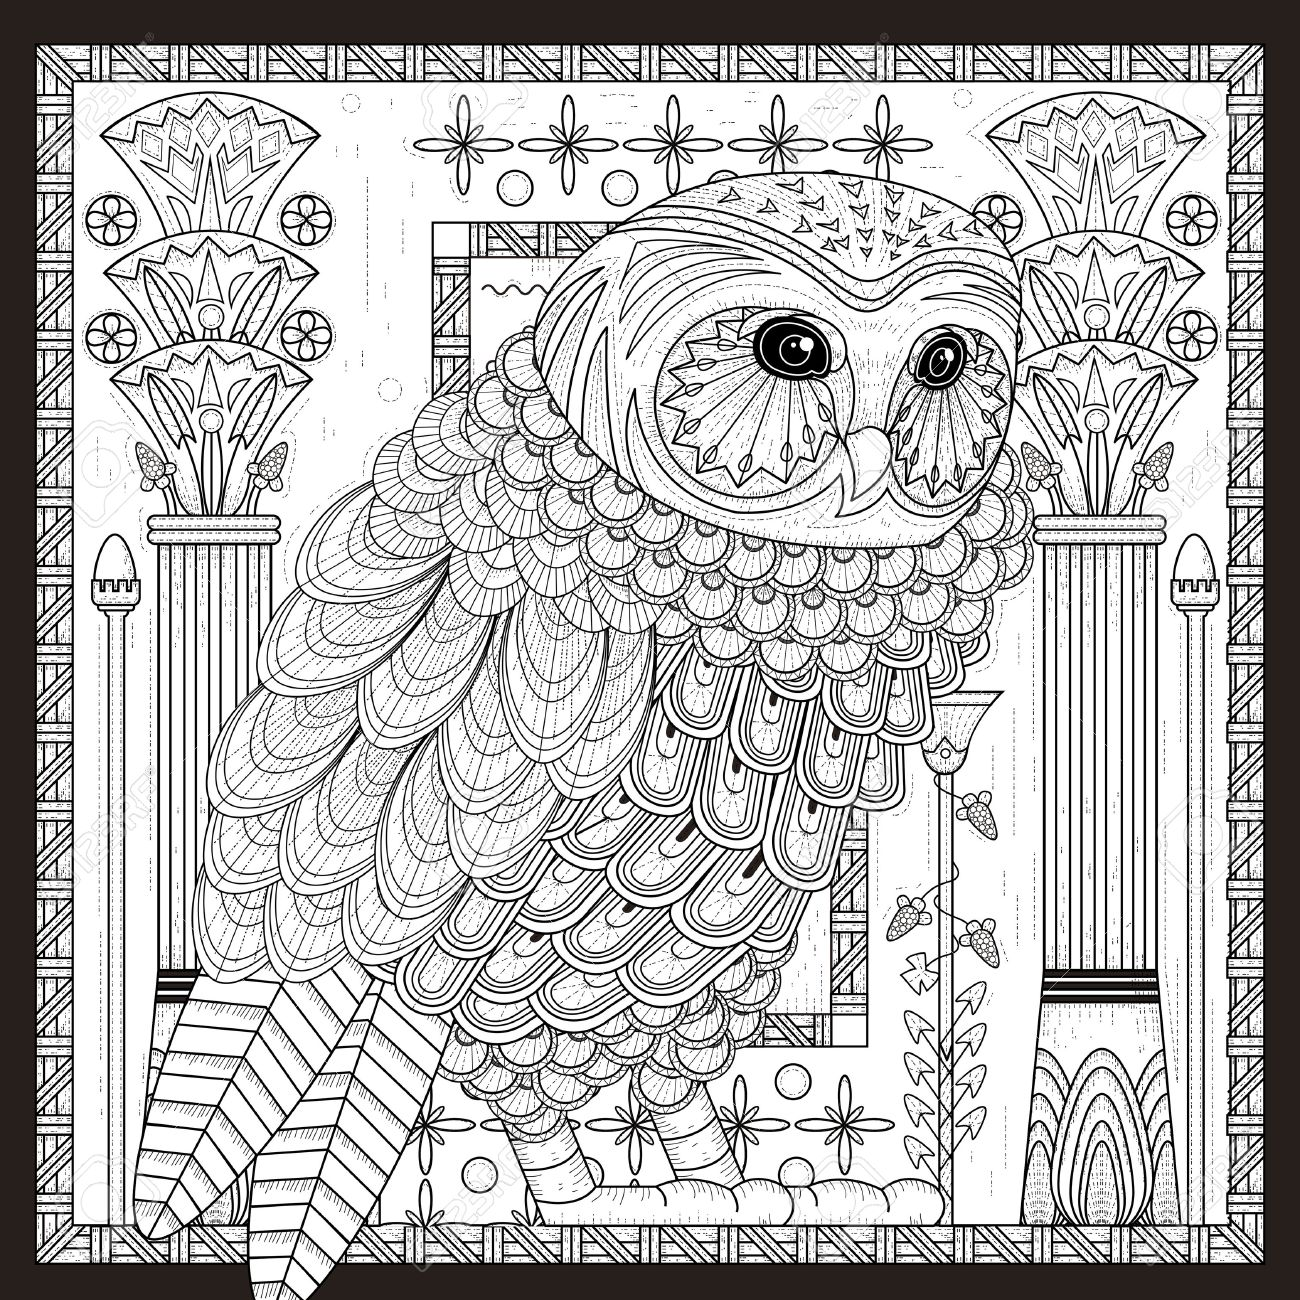 splendid owl coloring page design in egypt style royalty free